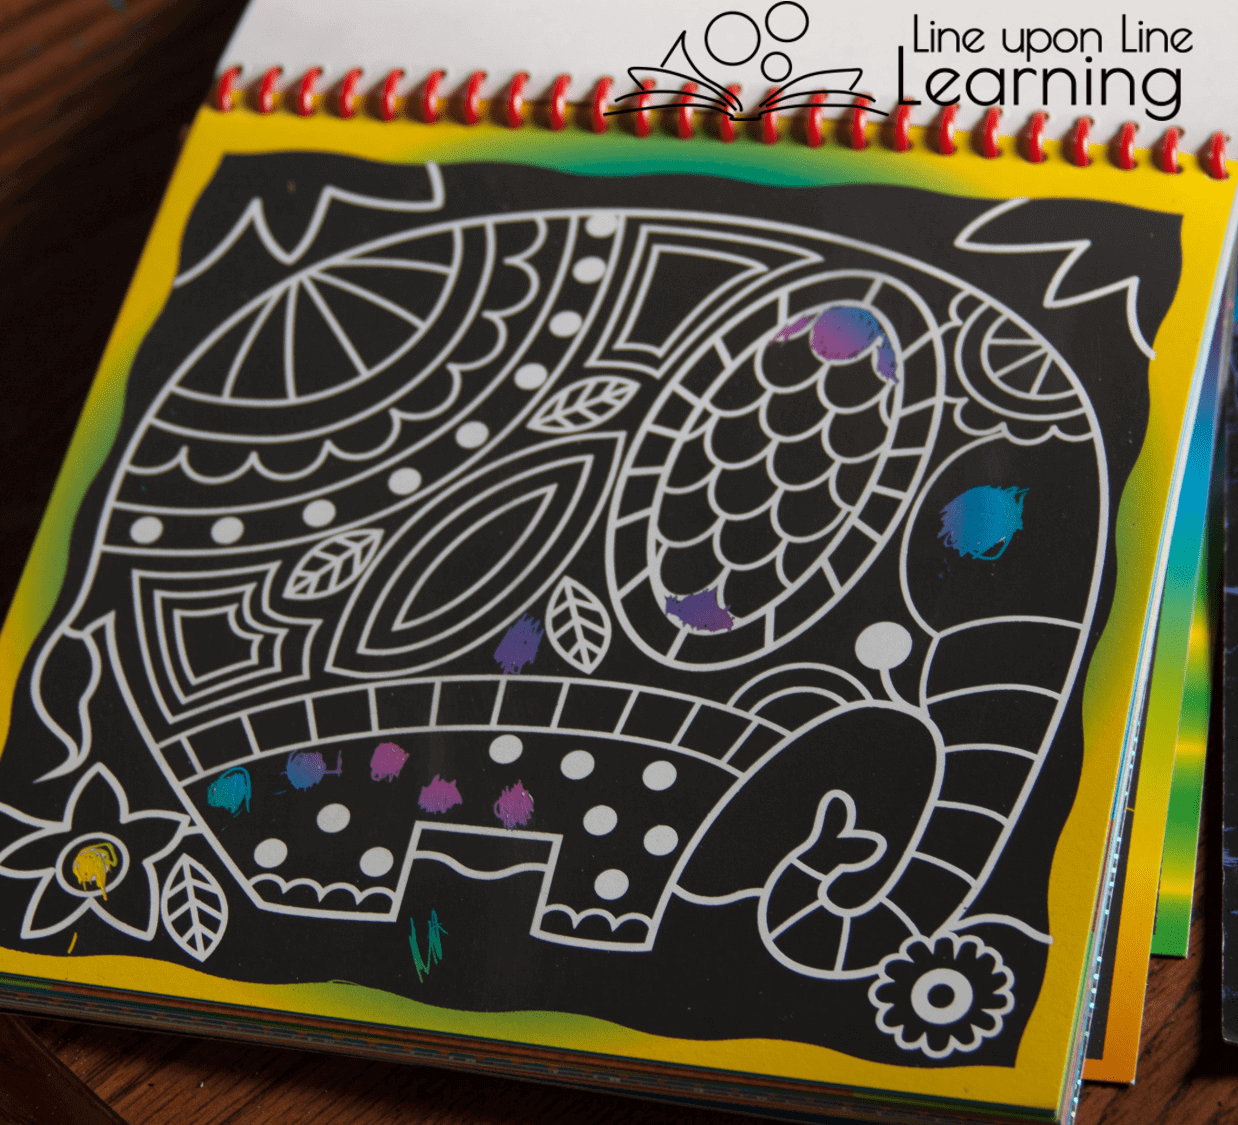 Using a pre-printed scratch board is fun, but we wanted to have a little more freedom in our own scratch board art project.